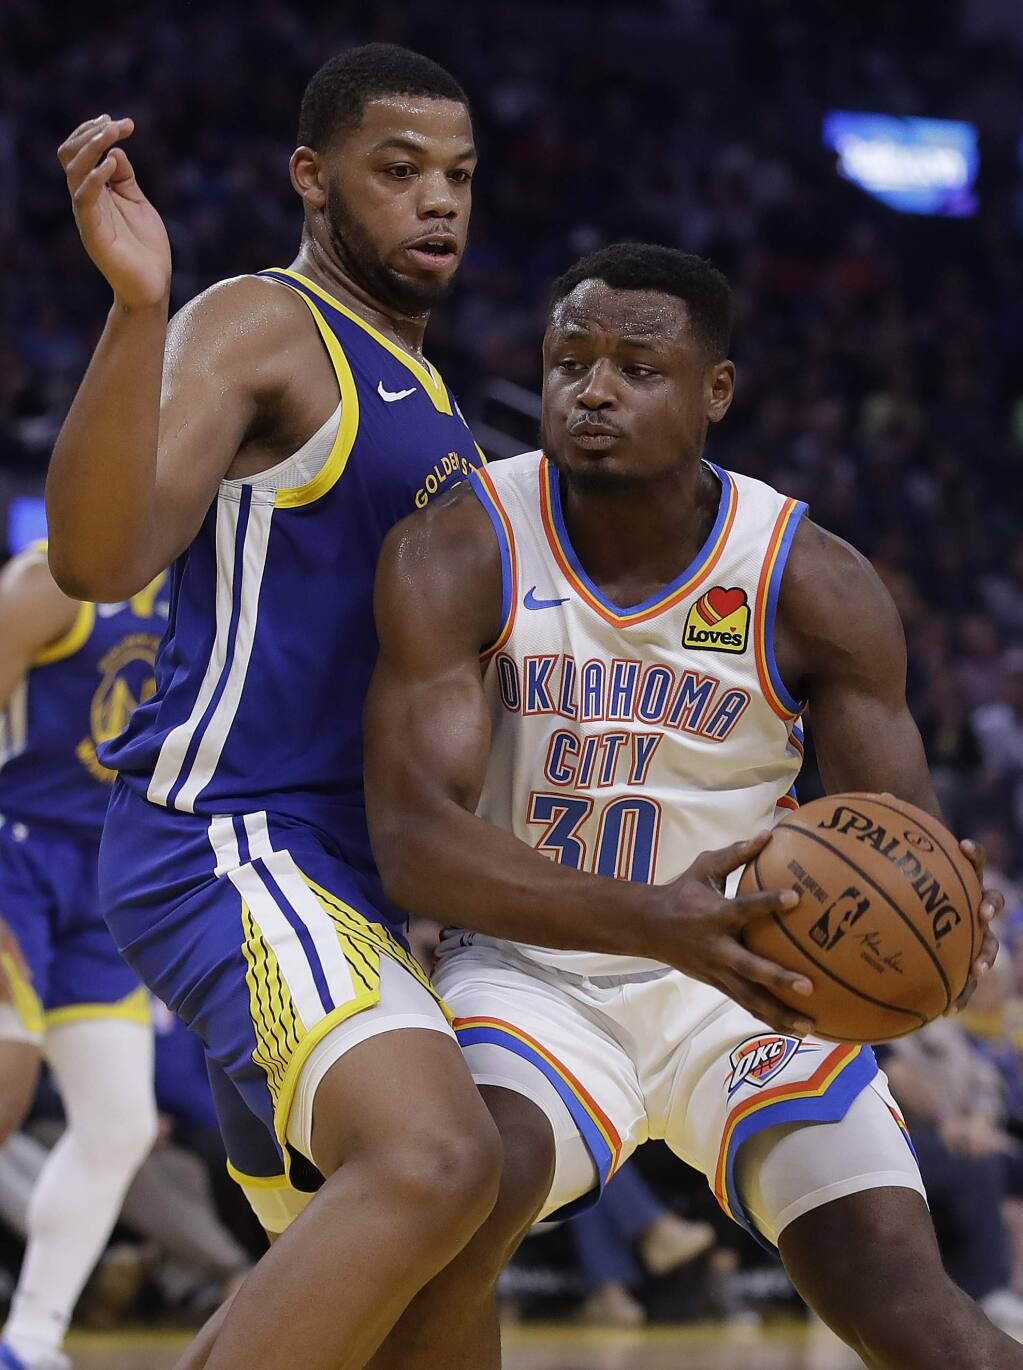 Golden State Warriors' Omari Spellman, left, defends against Oklahoma City Thunder guard Deonte Burton (30) in the first half of an NBA basketball game Monday, Nov. 25, 2019, in San Francisco. (AP Photo/Ben Margot)